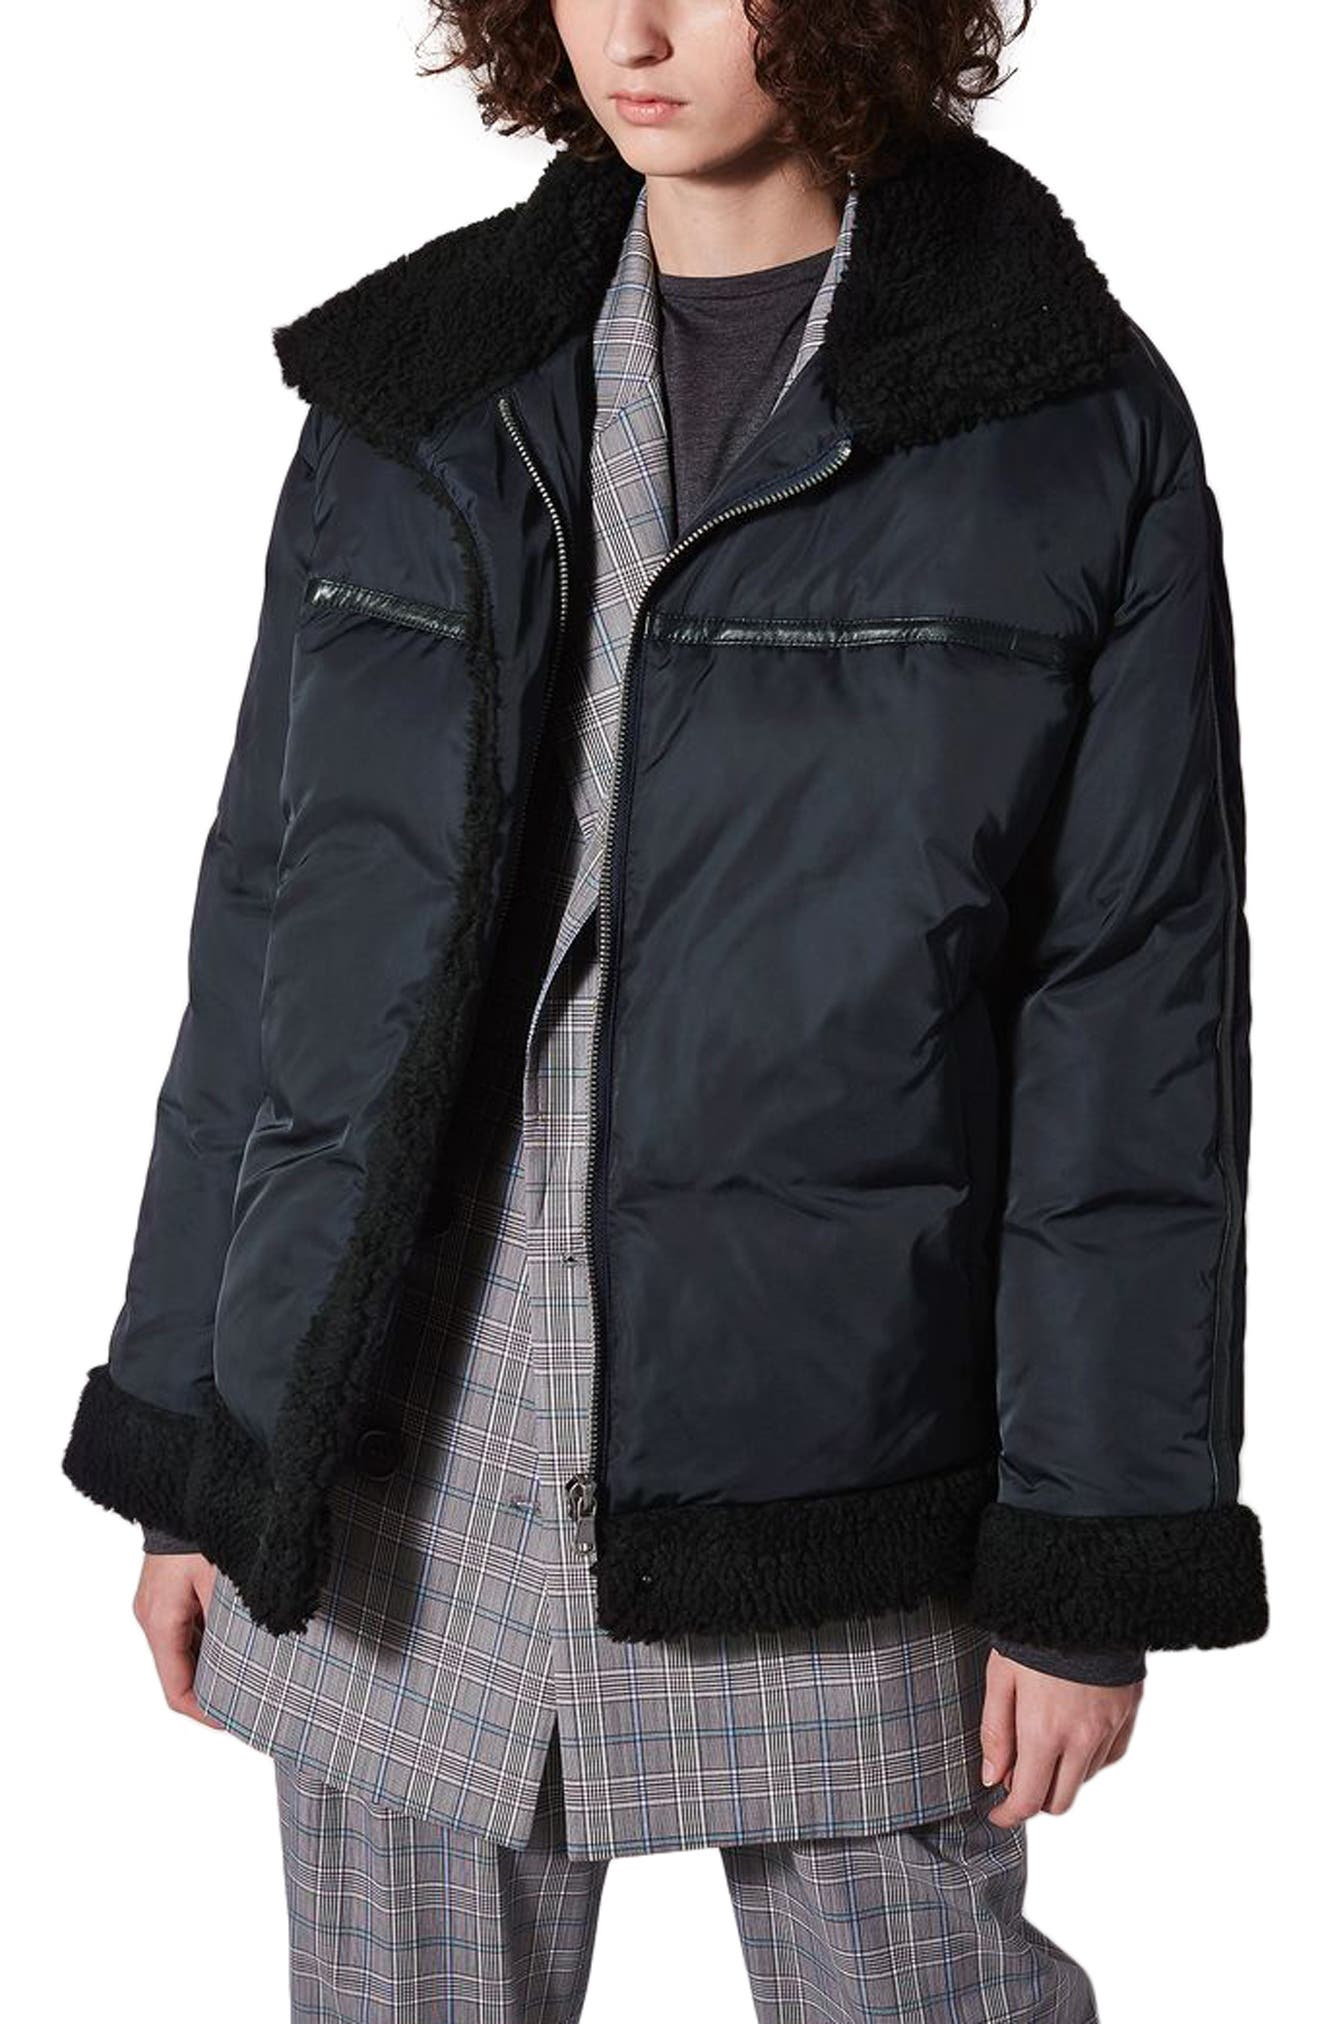 Topshop Boutique Fleece Lined Puffer Jacket